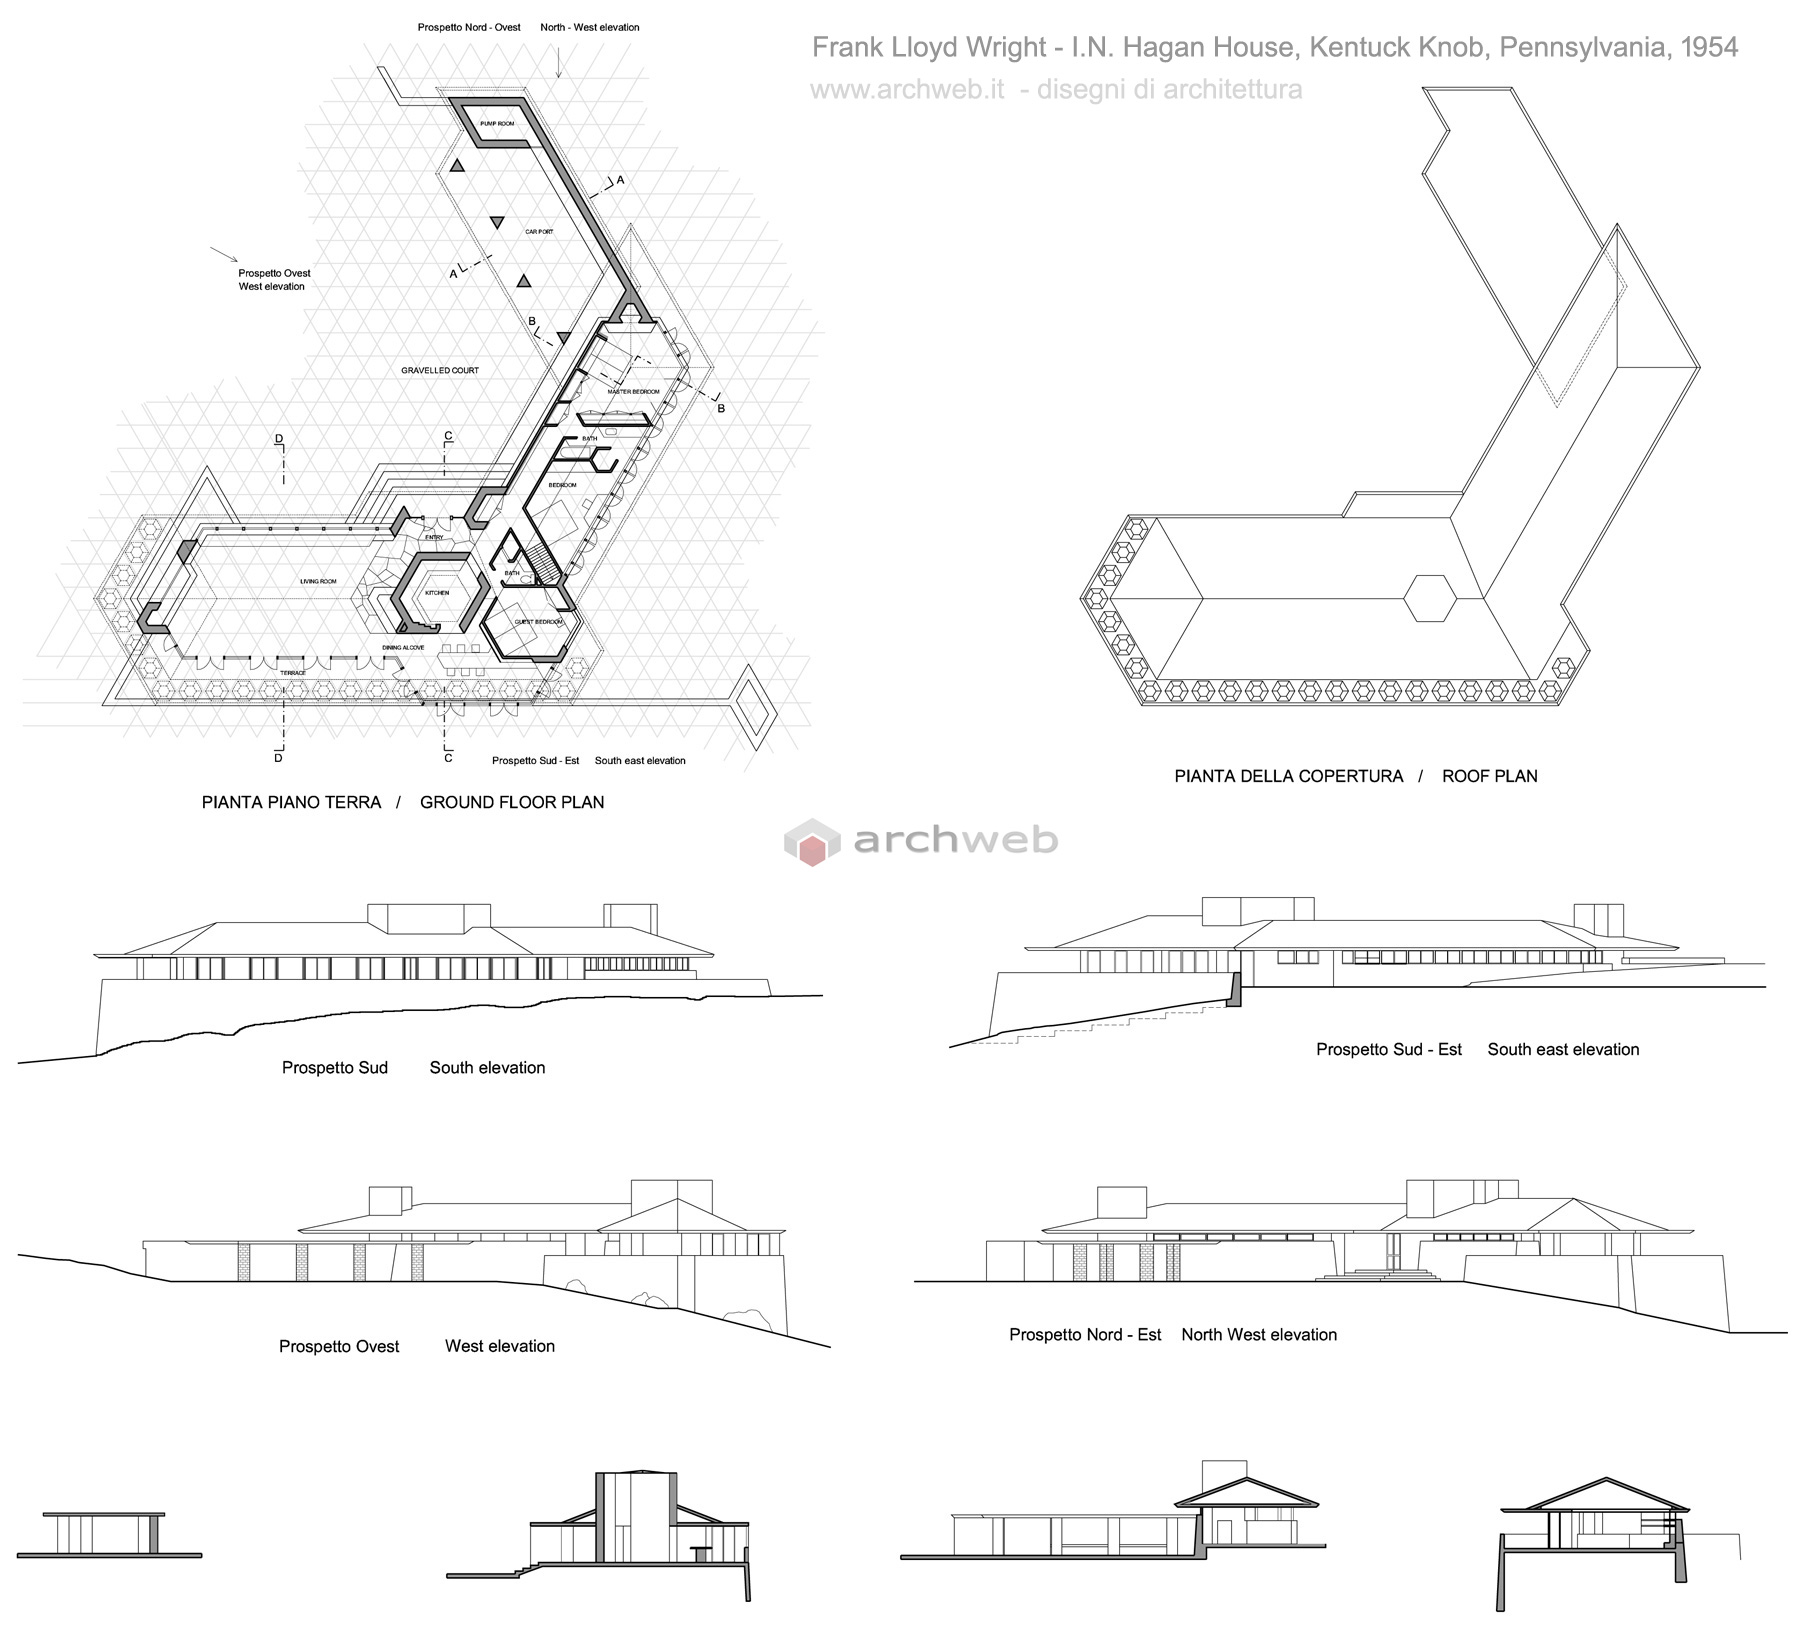 Hagan_house_wright_drawings